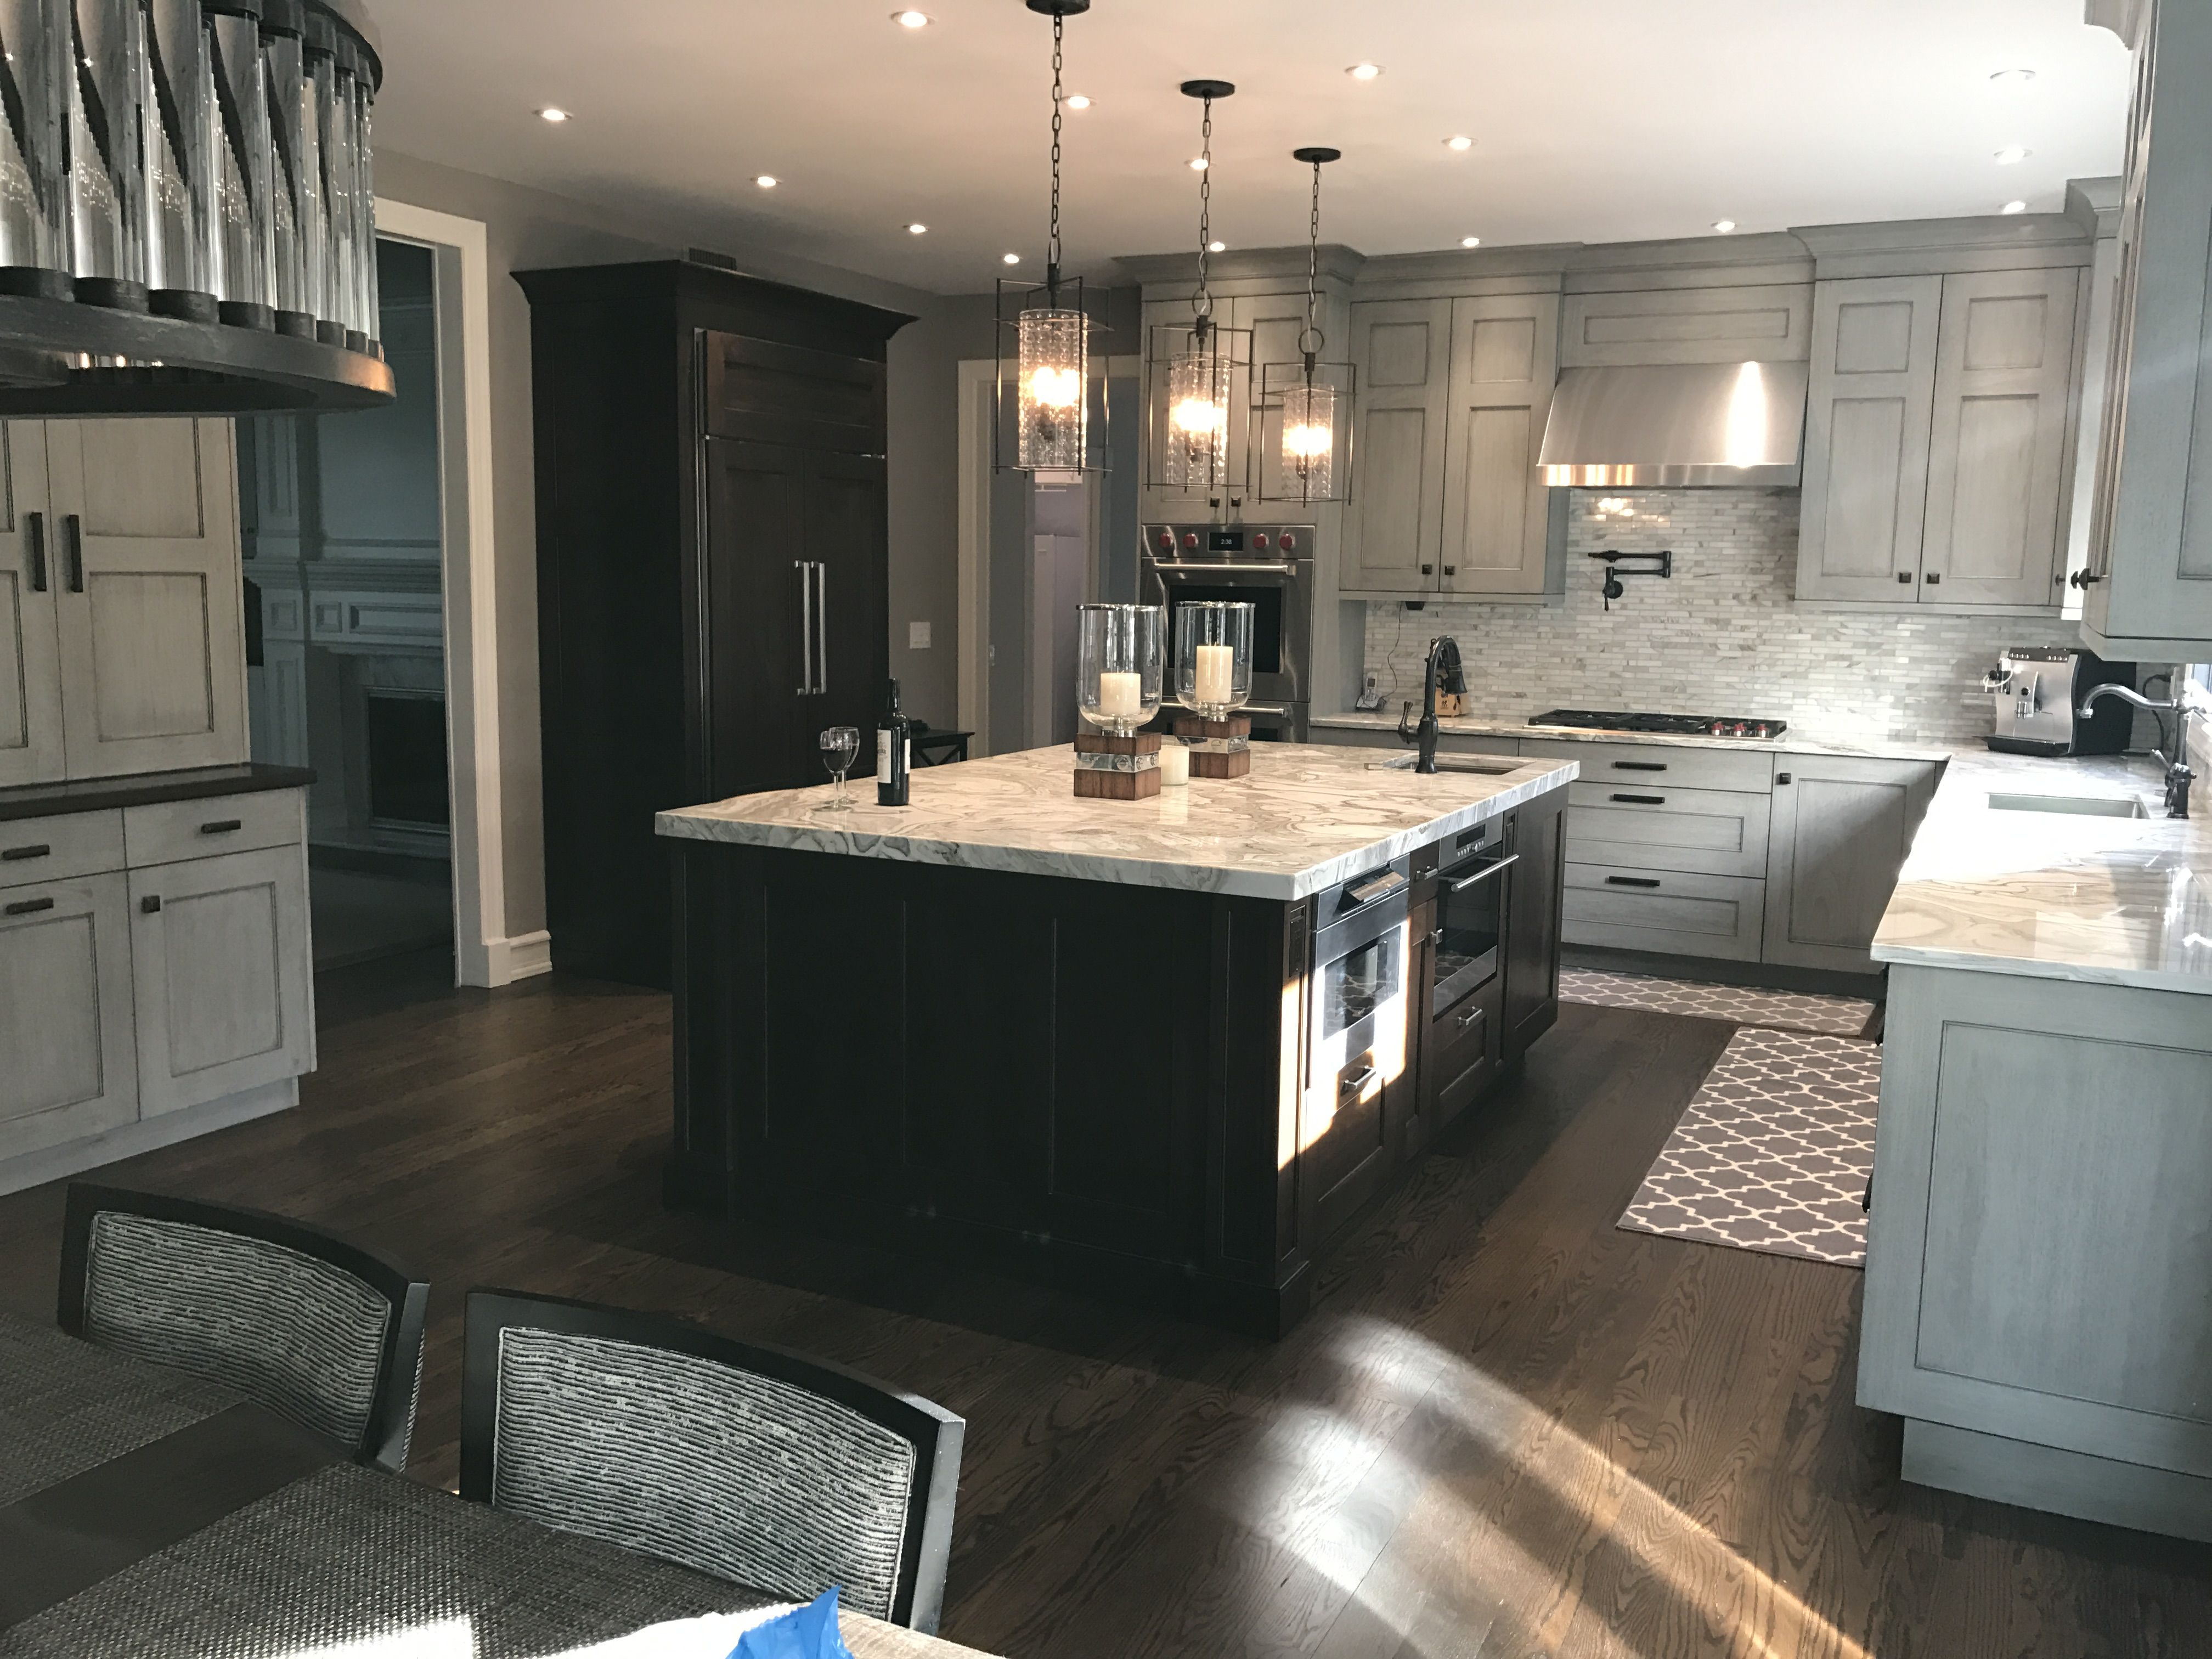 Ruttcabinetry In A North Shore Long Island Ny Kitchen Kitchen